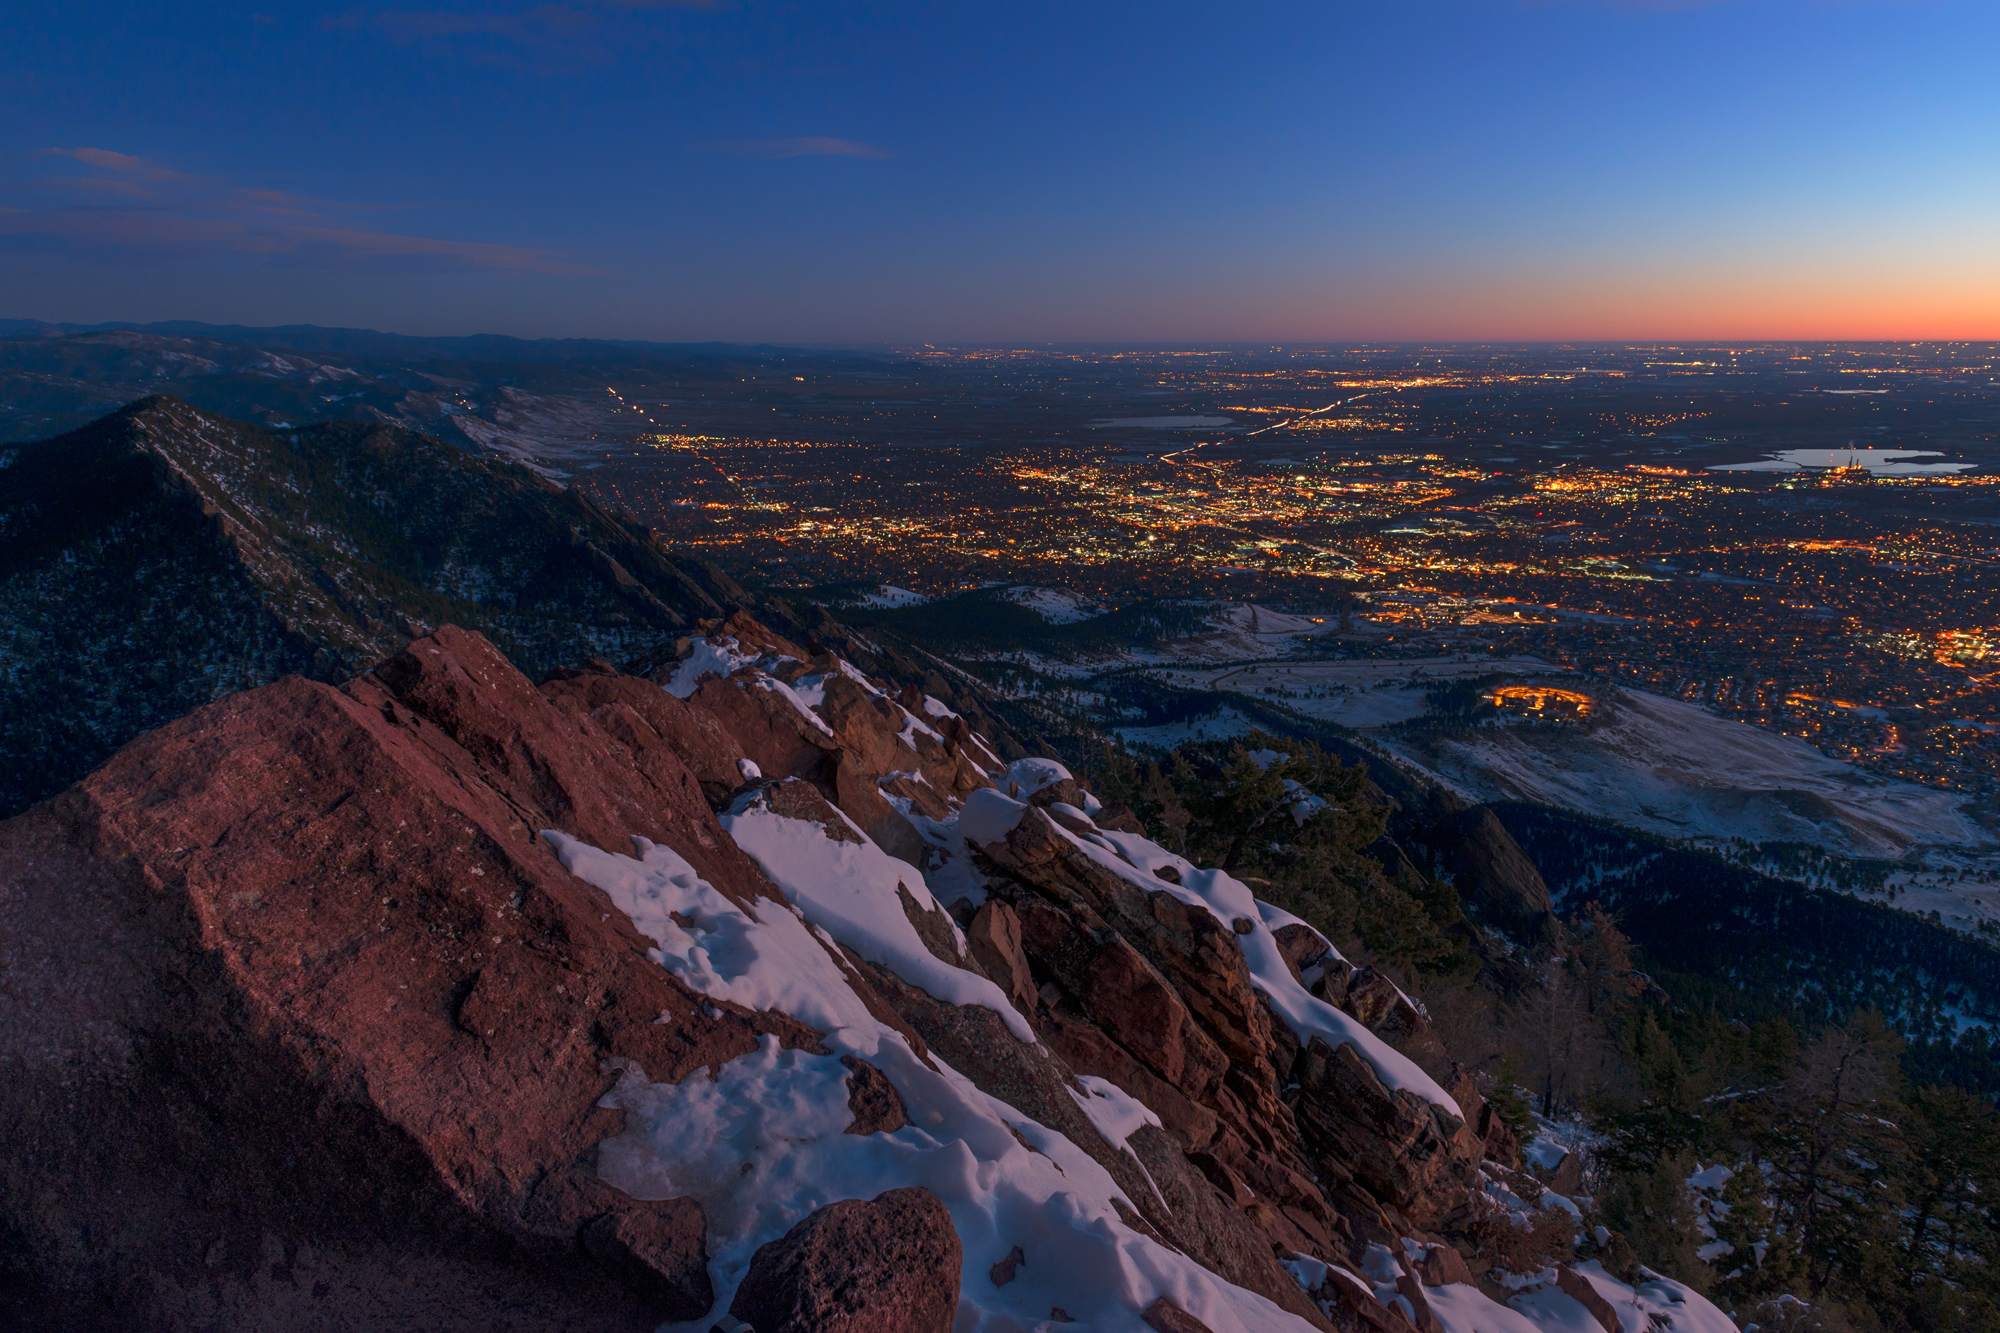 Dawn Over Boulder. Bear Peak, Boulder, Colorado, 2014